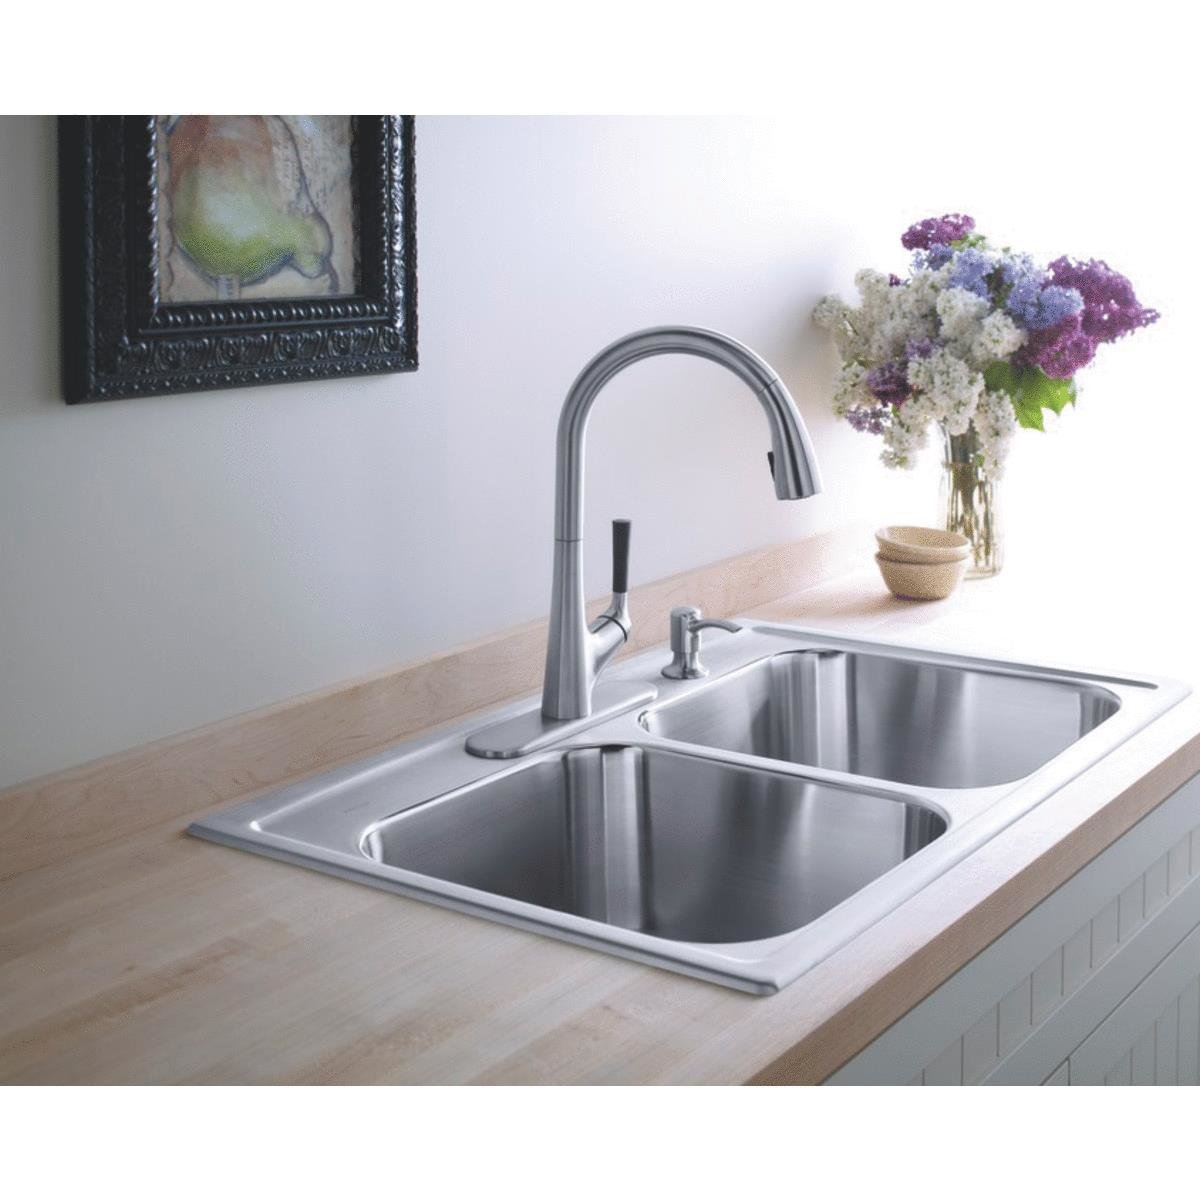 modern faucet kpf pull amazon kitchen down sink bathtub kraus single spouts stainless lever mateo dp steel canada